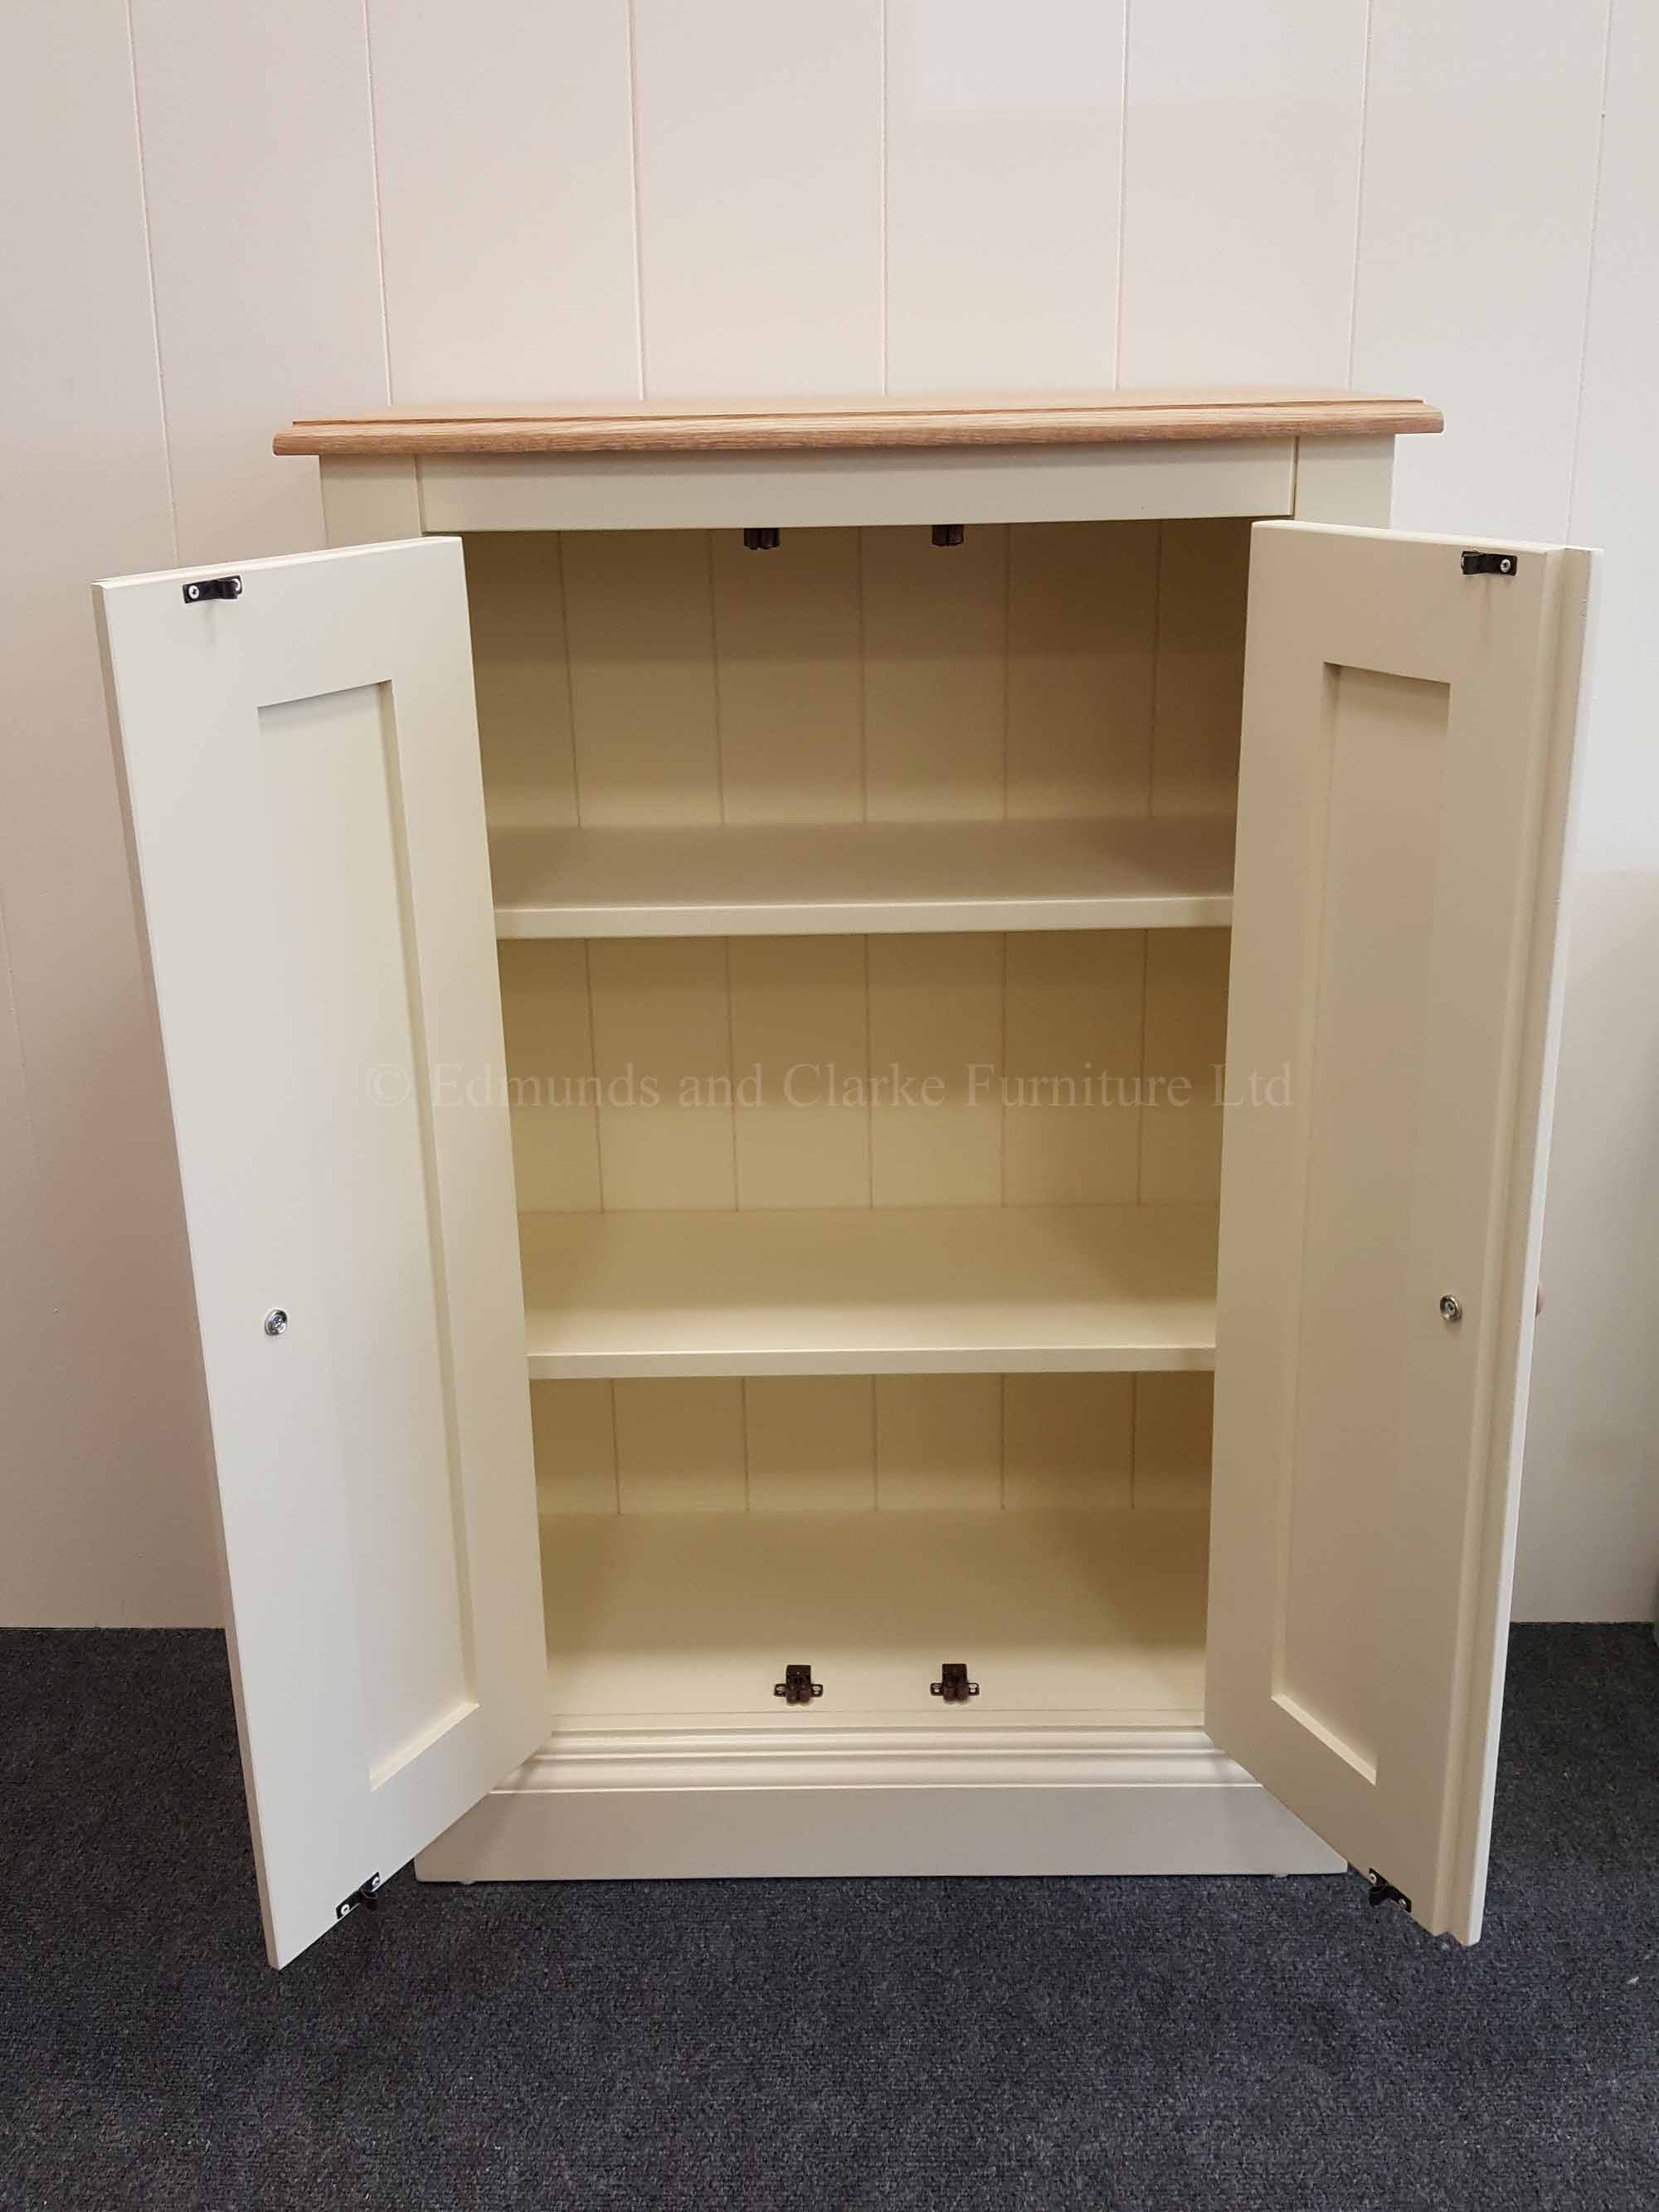 Two door painted cupboard, internal adjustable shelves, oak top